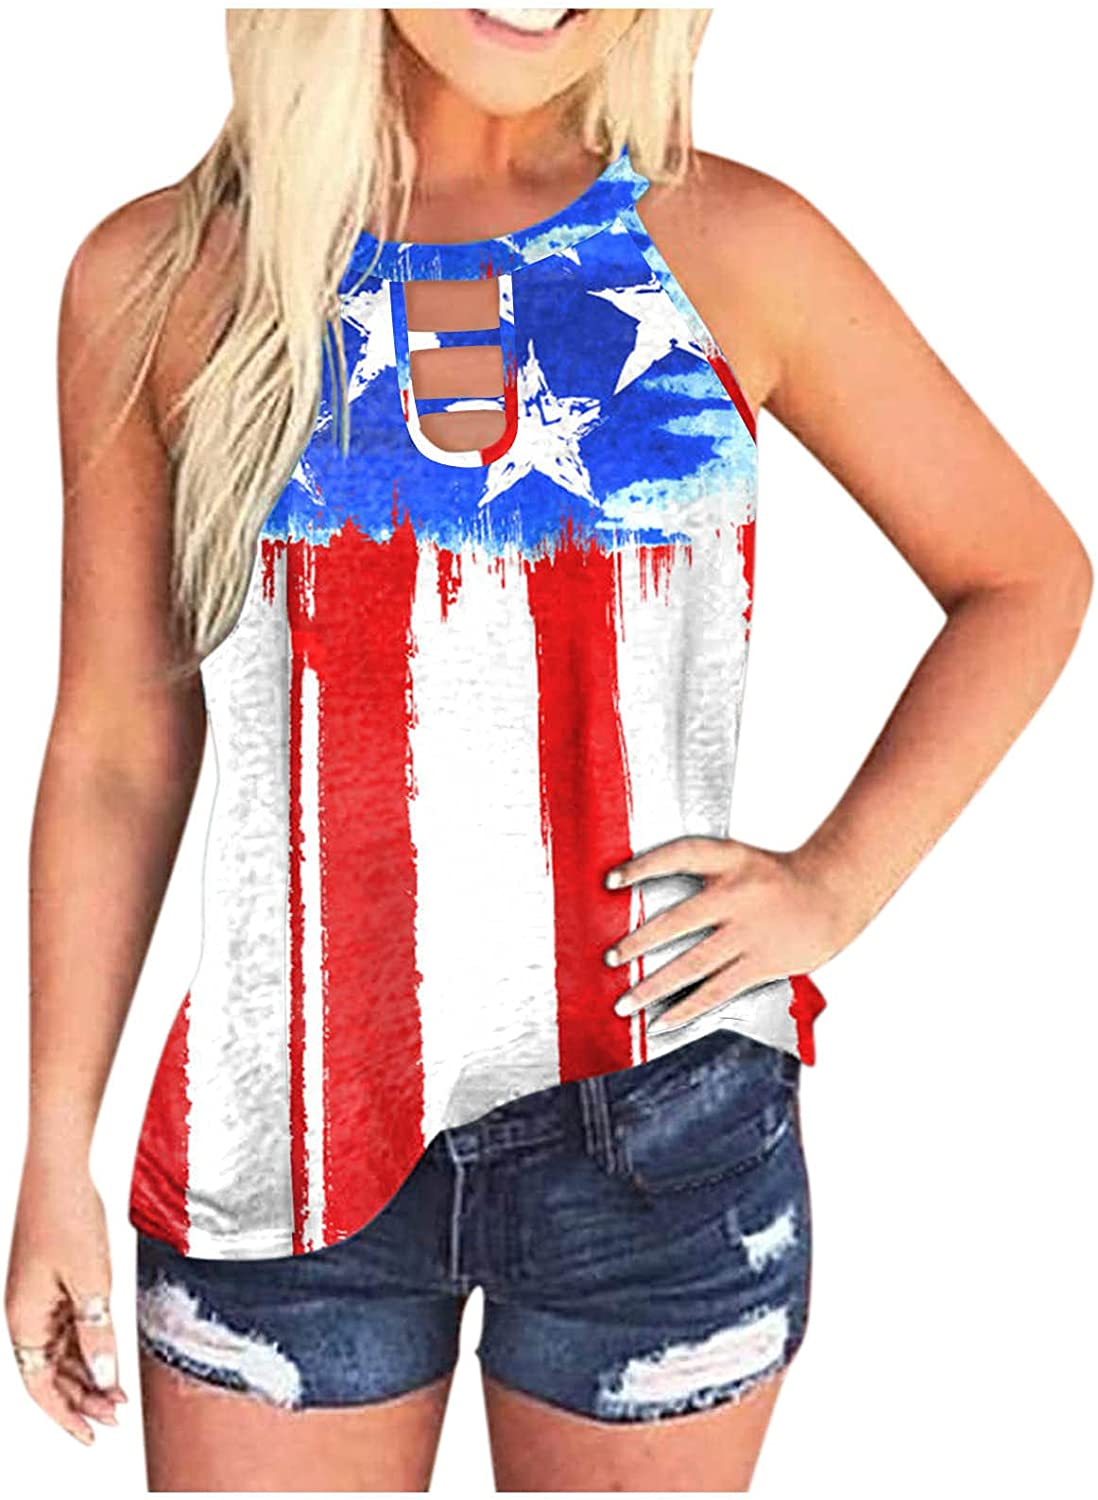 AODONG Tank Tops for Women Summer Sunflower Cute Printed Vest Tshirt Sleeveless Workout Blouse Casual Tank Top 4th of July